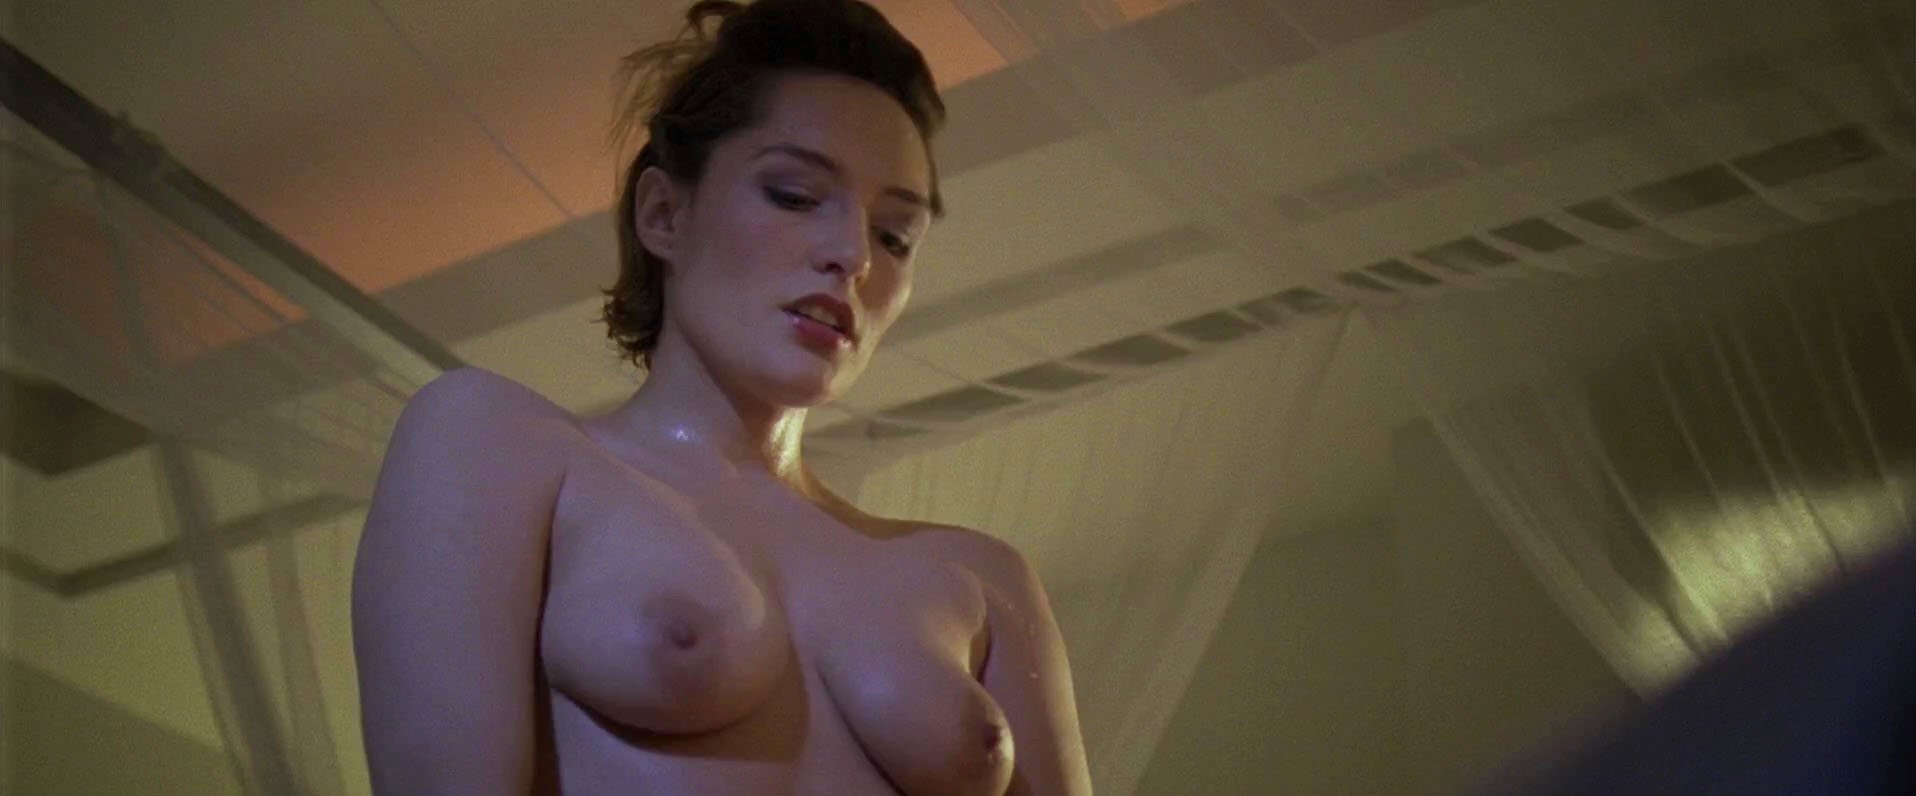 Free penetration quicktime movies